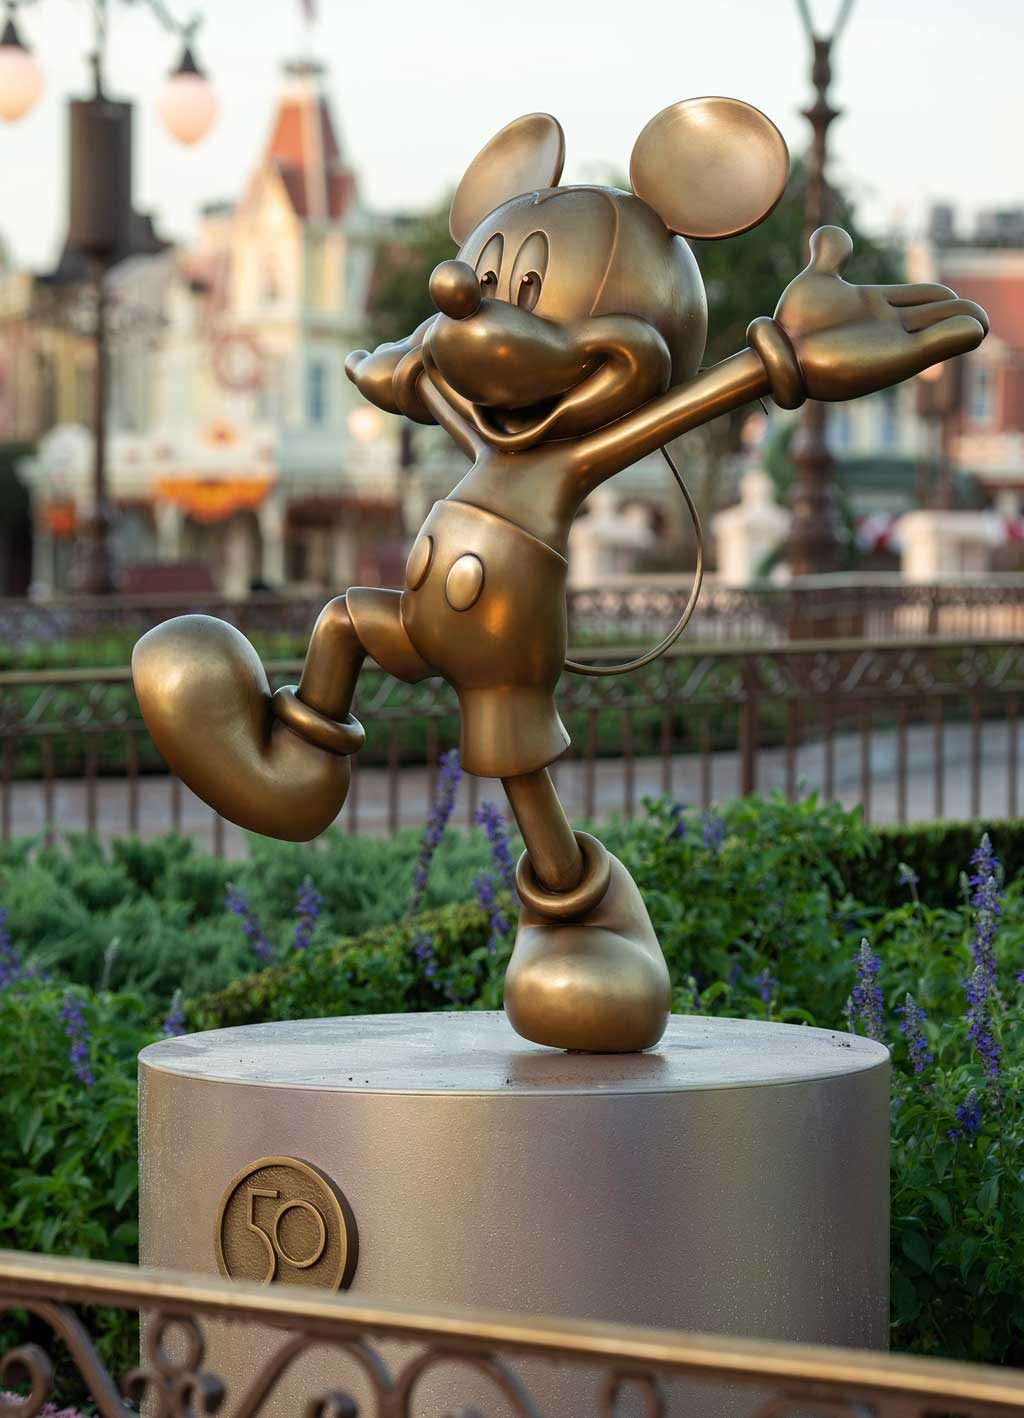 """Mickey Mouse is one of the """"Disney Fab 50"""" golden character sculptures appearing in all four Walt Disney World Resort theme parks in Lake Buena Vista, Fla., as part of """"The World's Most Magical Celebration,"""" beginning Oct. 1, 2021, in honor of the resort's 50th anniversary. (David Roark, photographer)"""